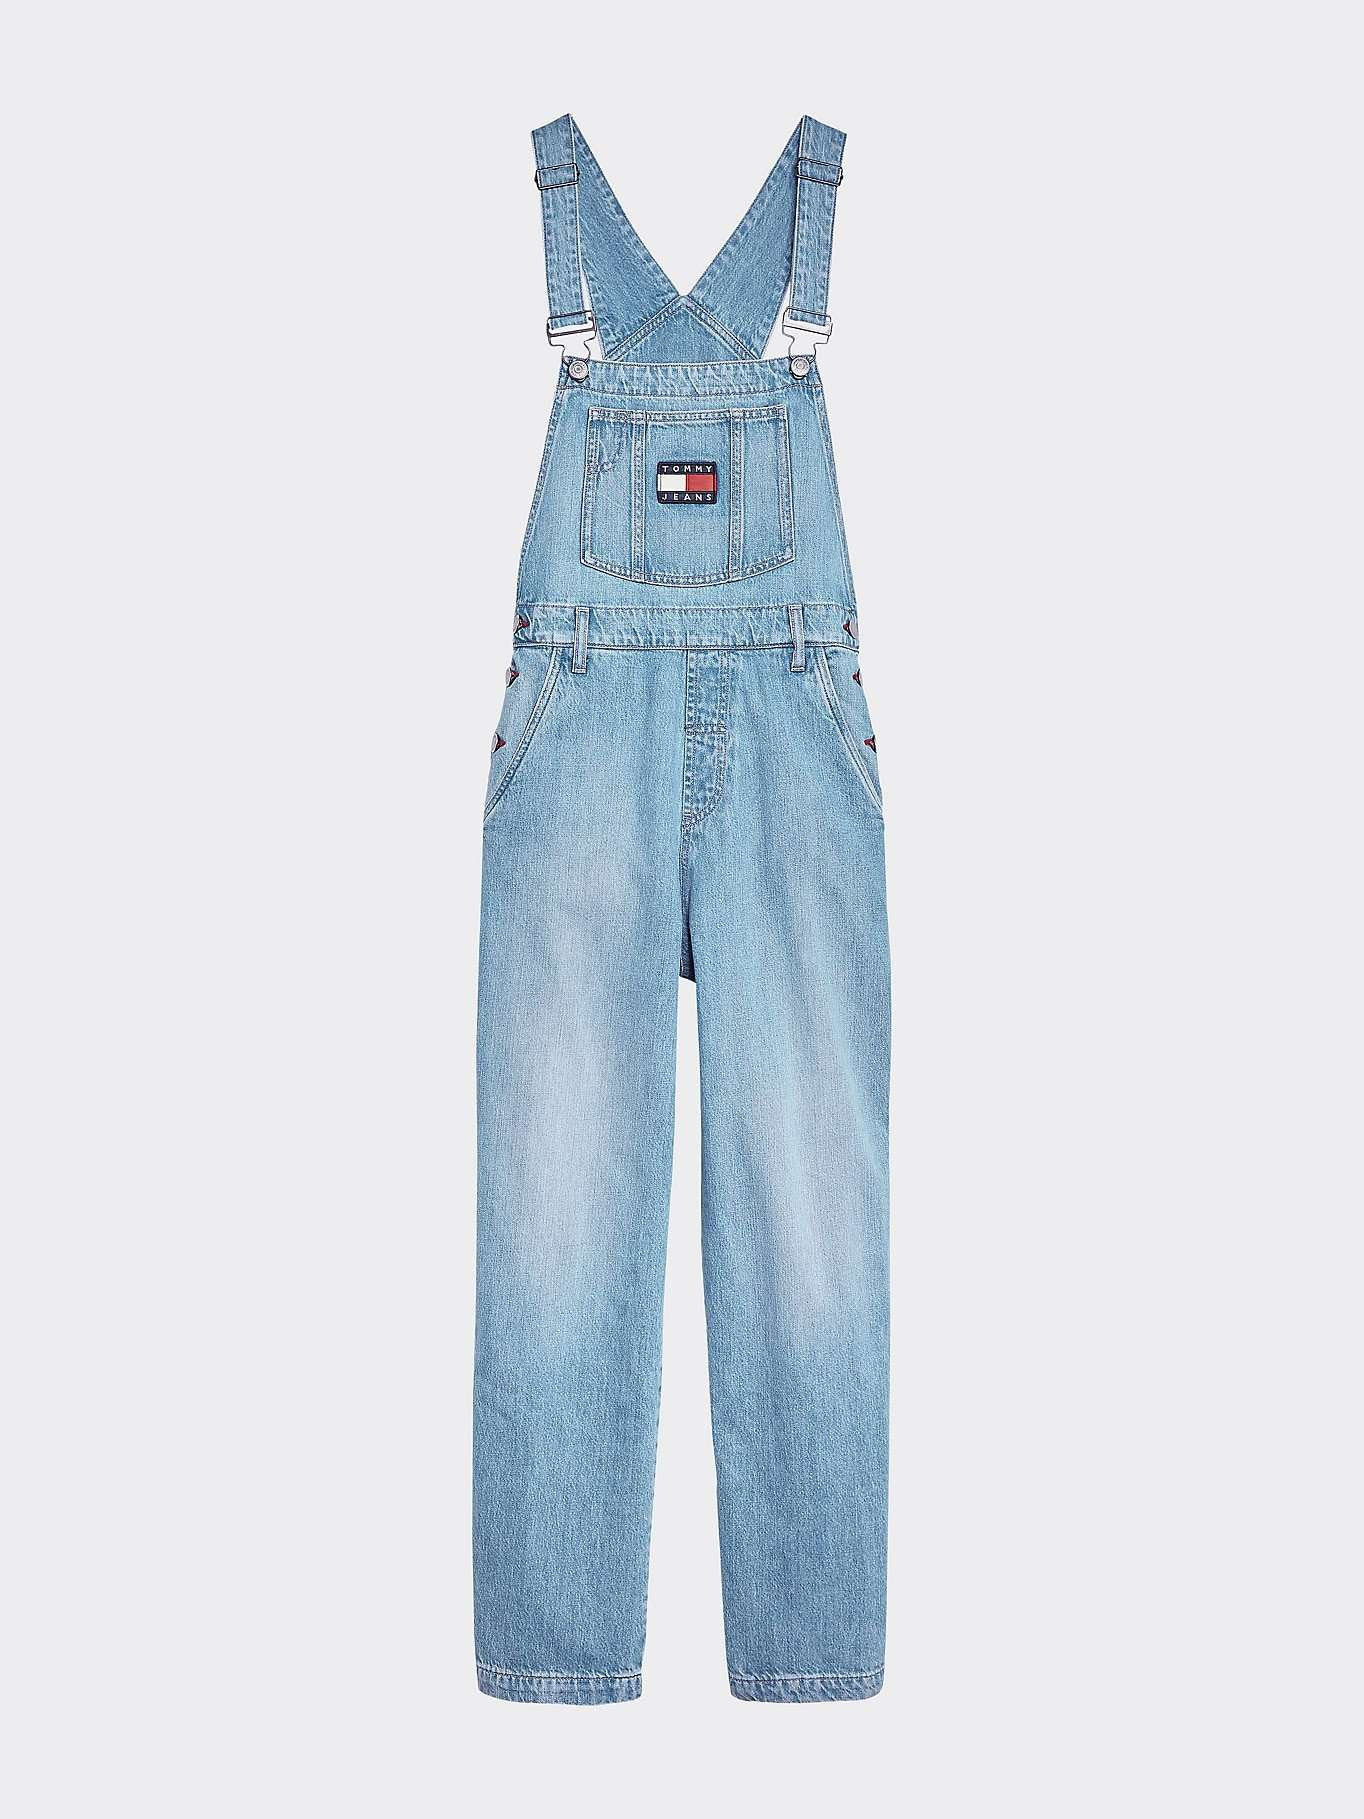 Tommy Hilfiger dungaree's